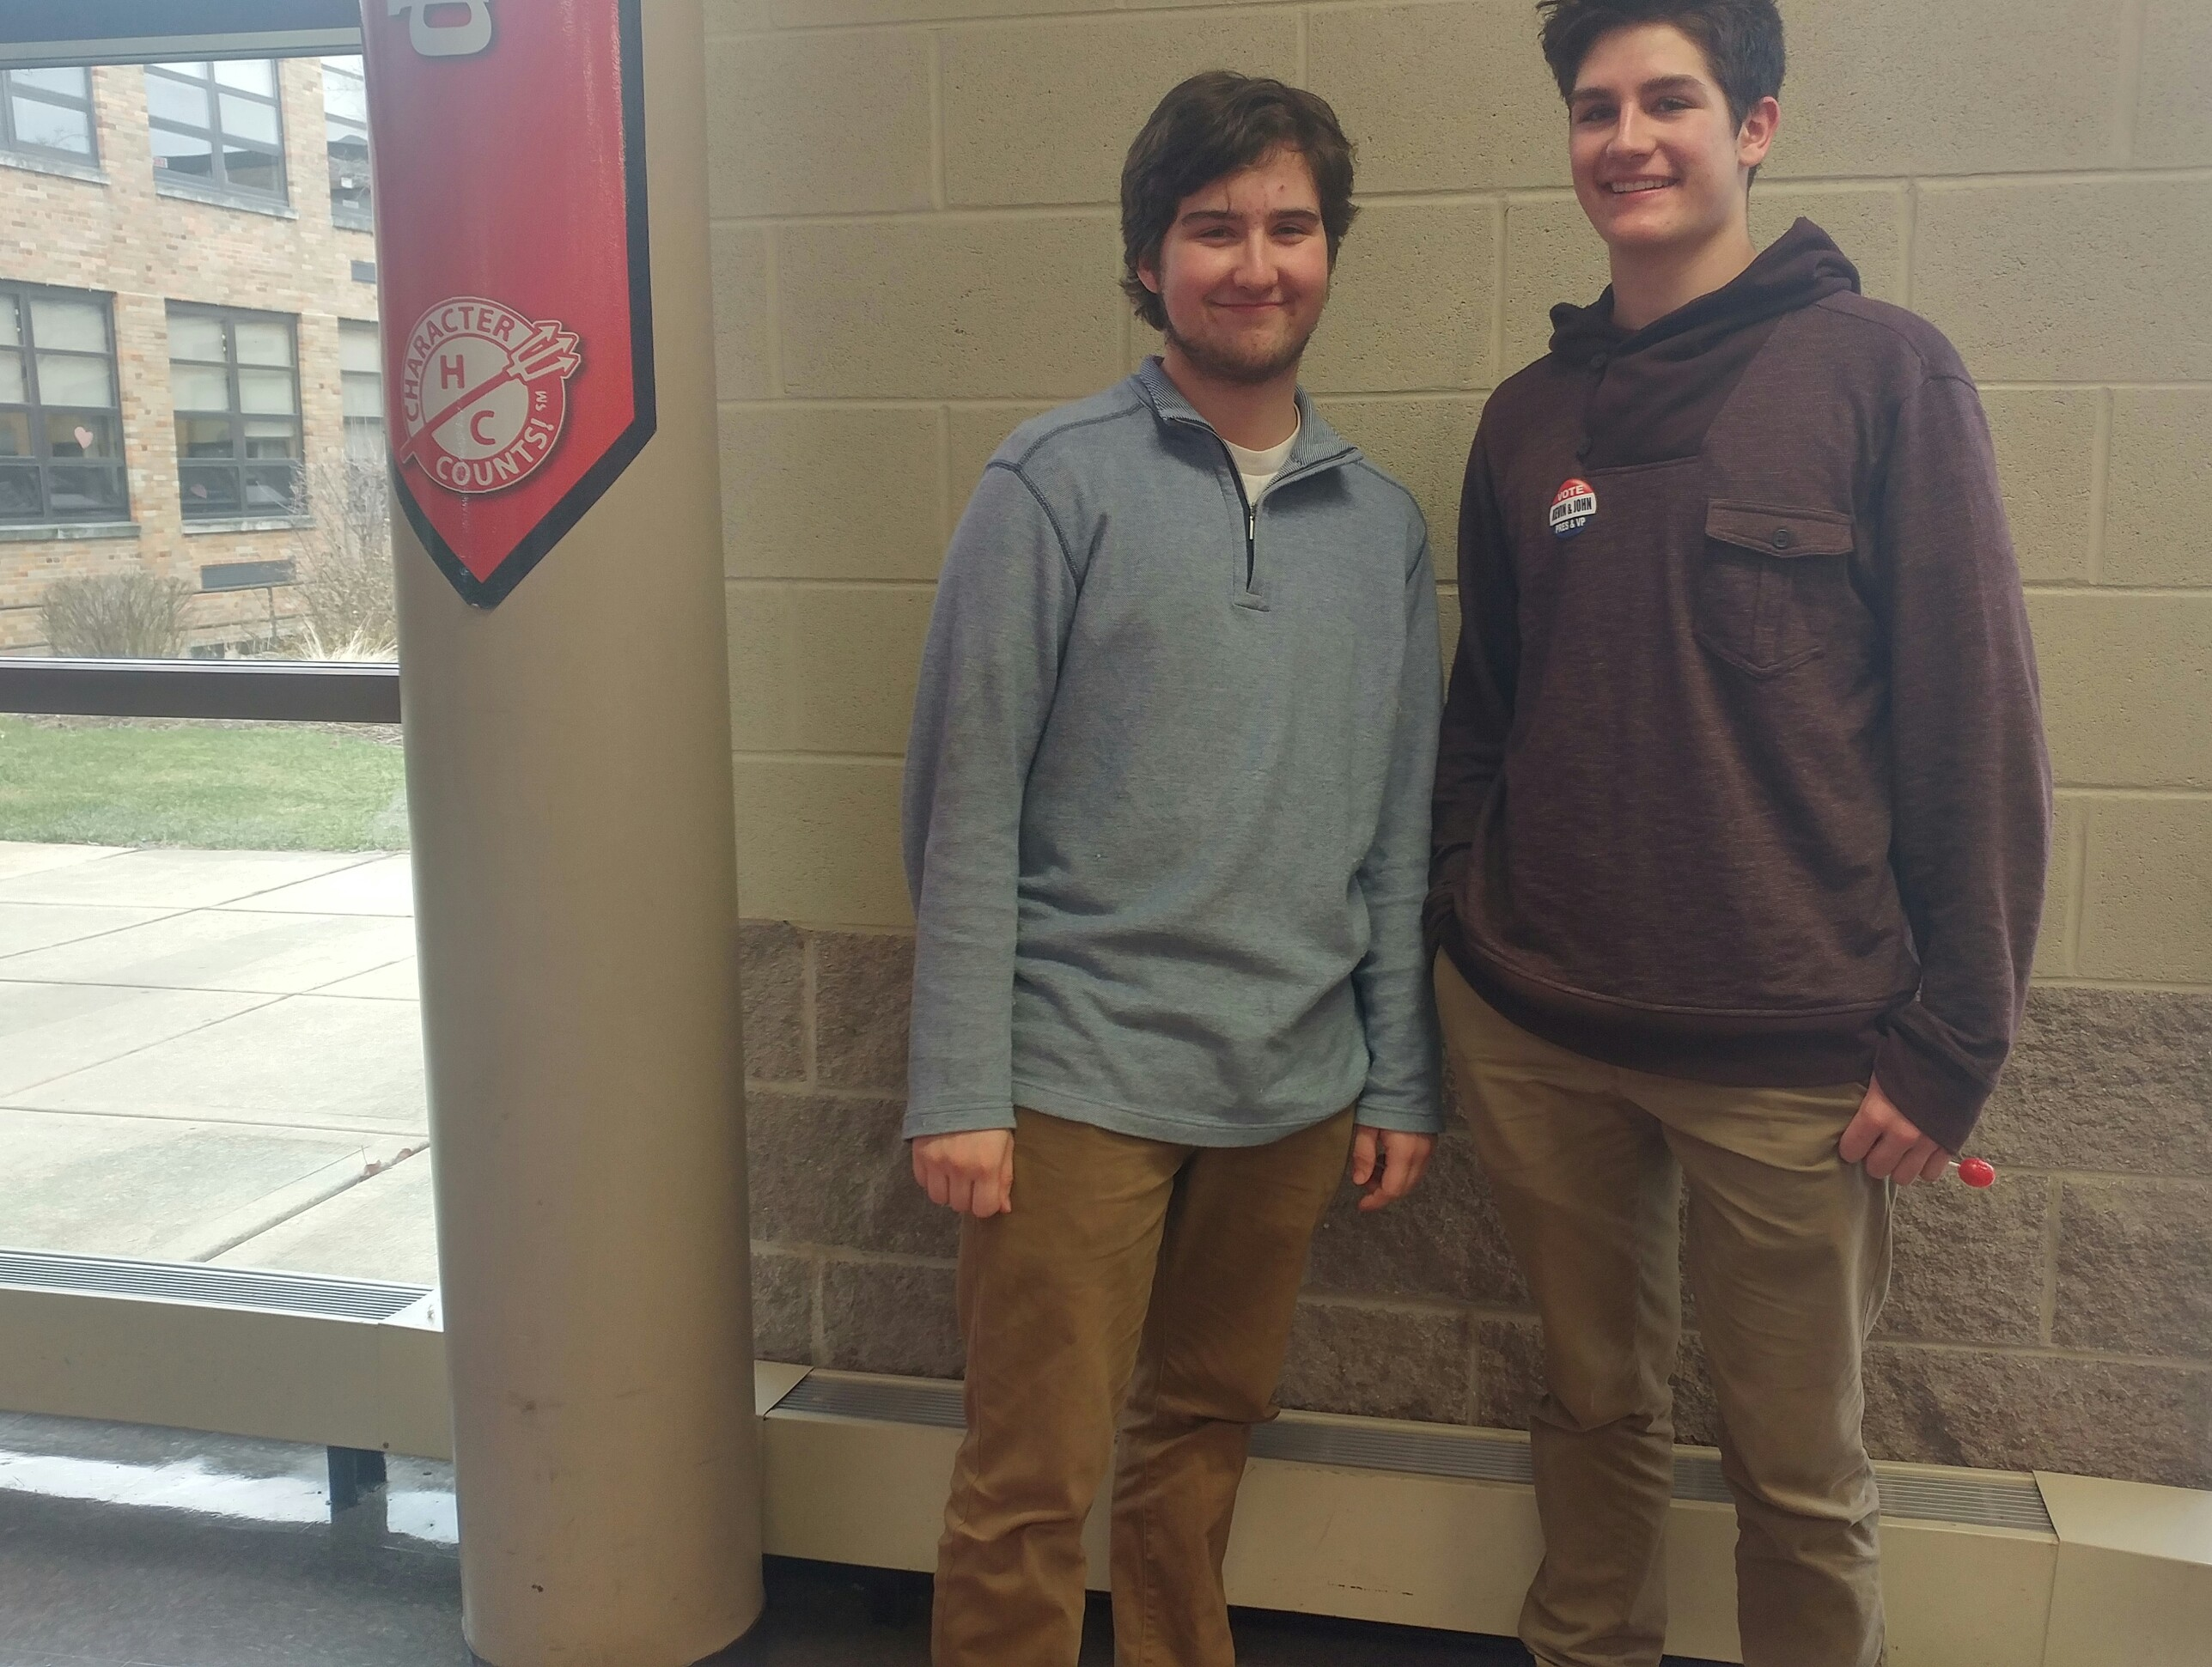 Students Ben Griffith, senior, and Connor Bower, junior, choose khakis and colored pullovers for a spring outfit.